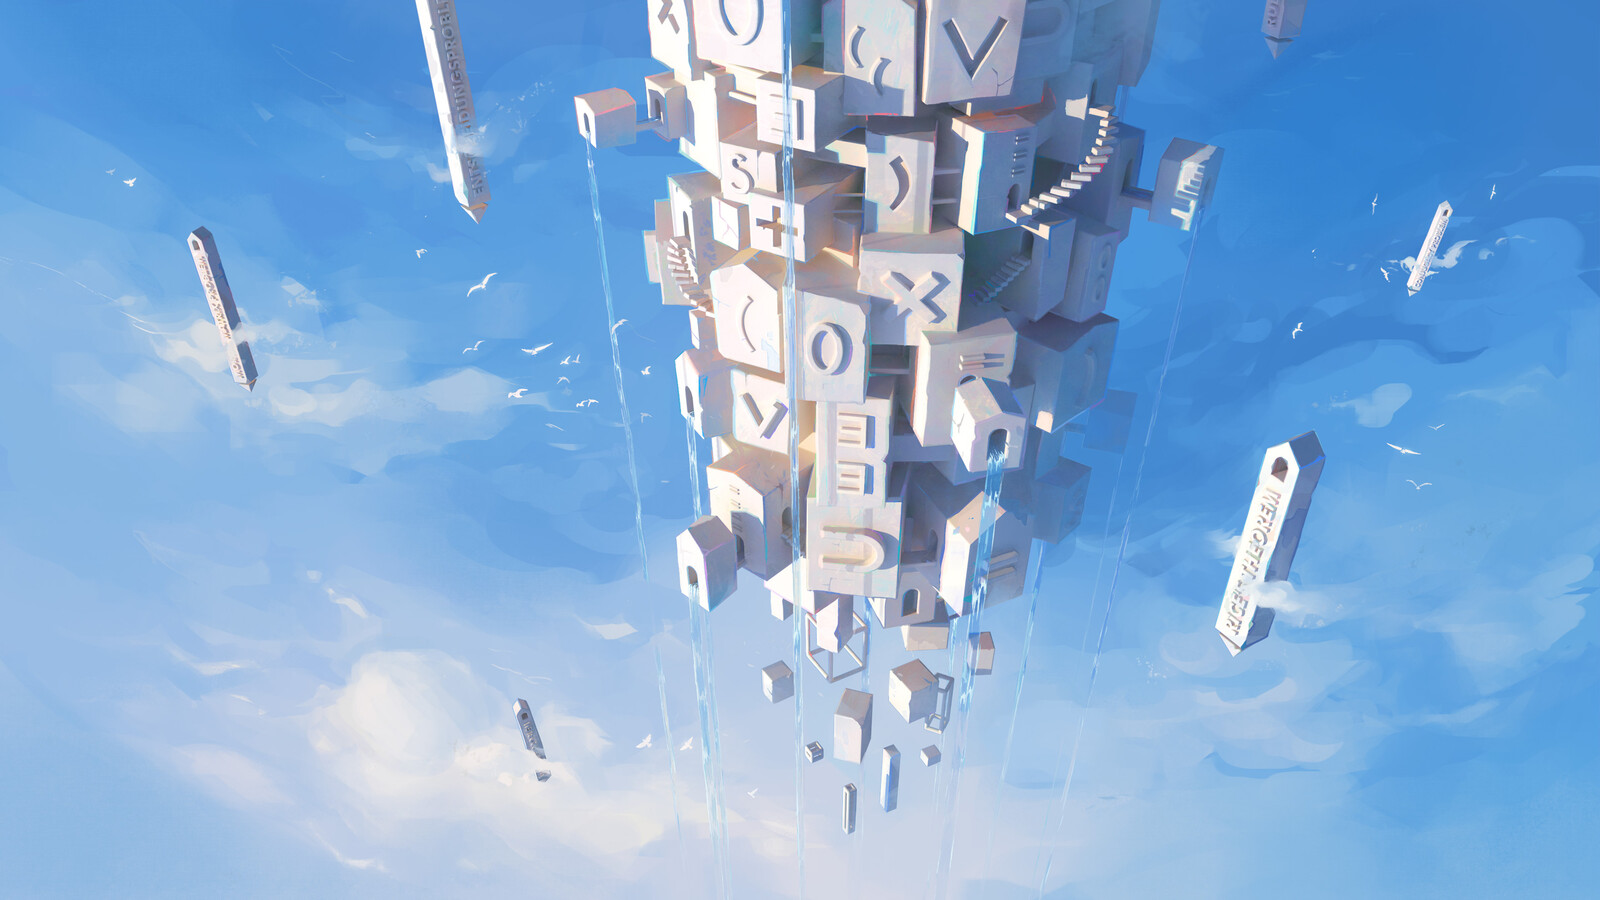 Tower of Math / Gödel's Floating City